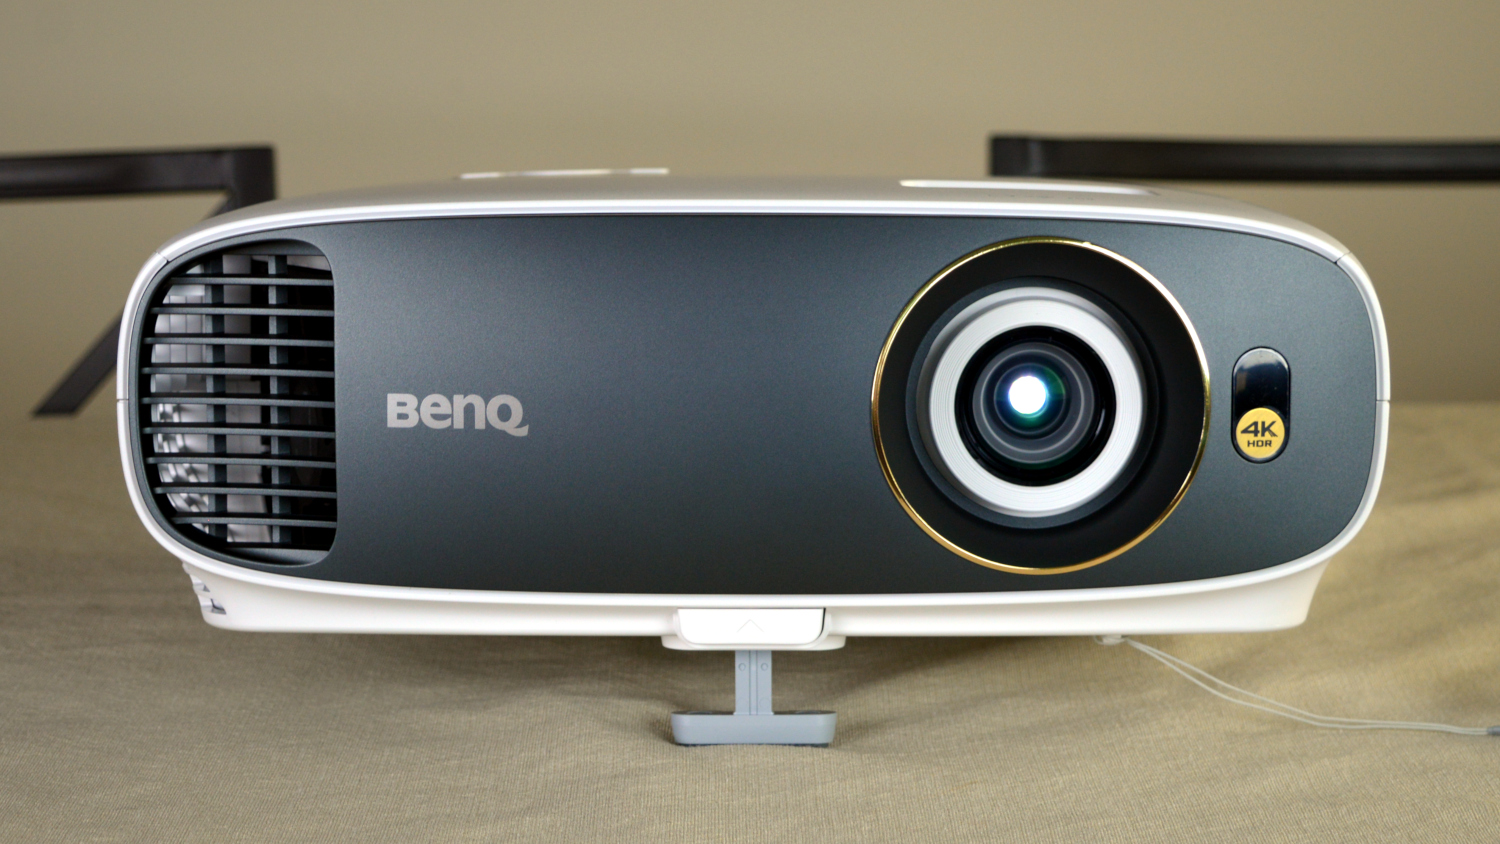 hight resolution of benq ht2550 4k hdr projector review